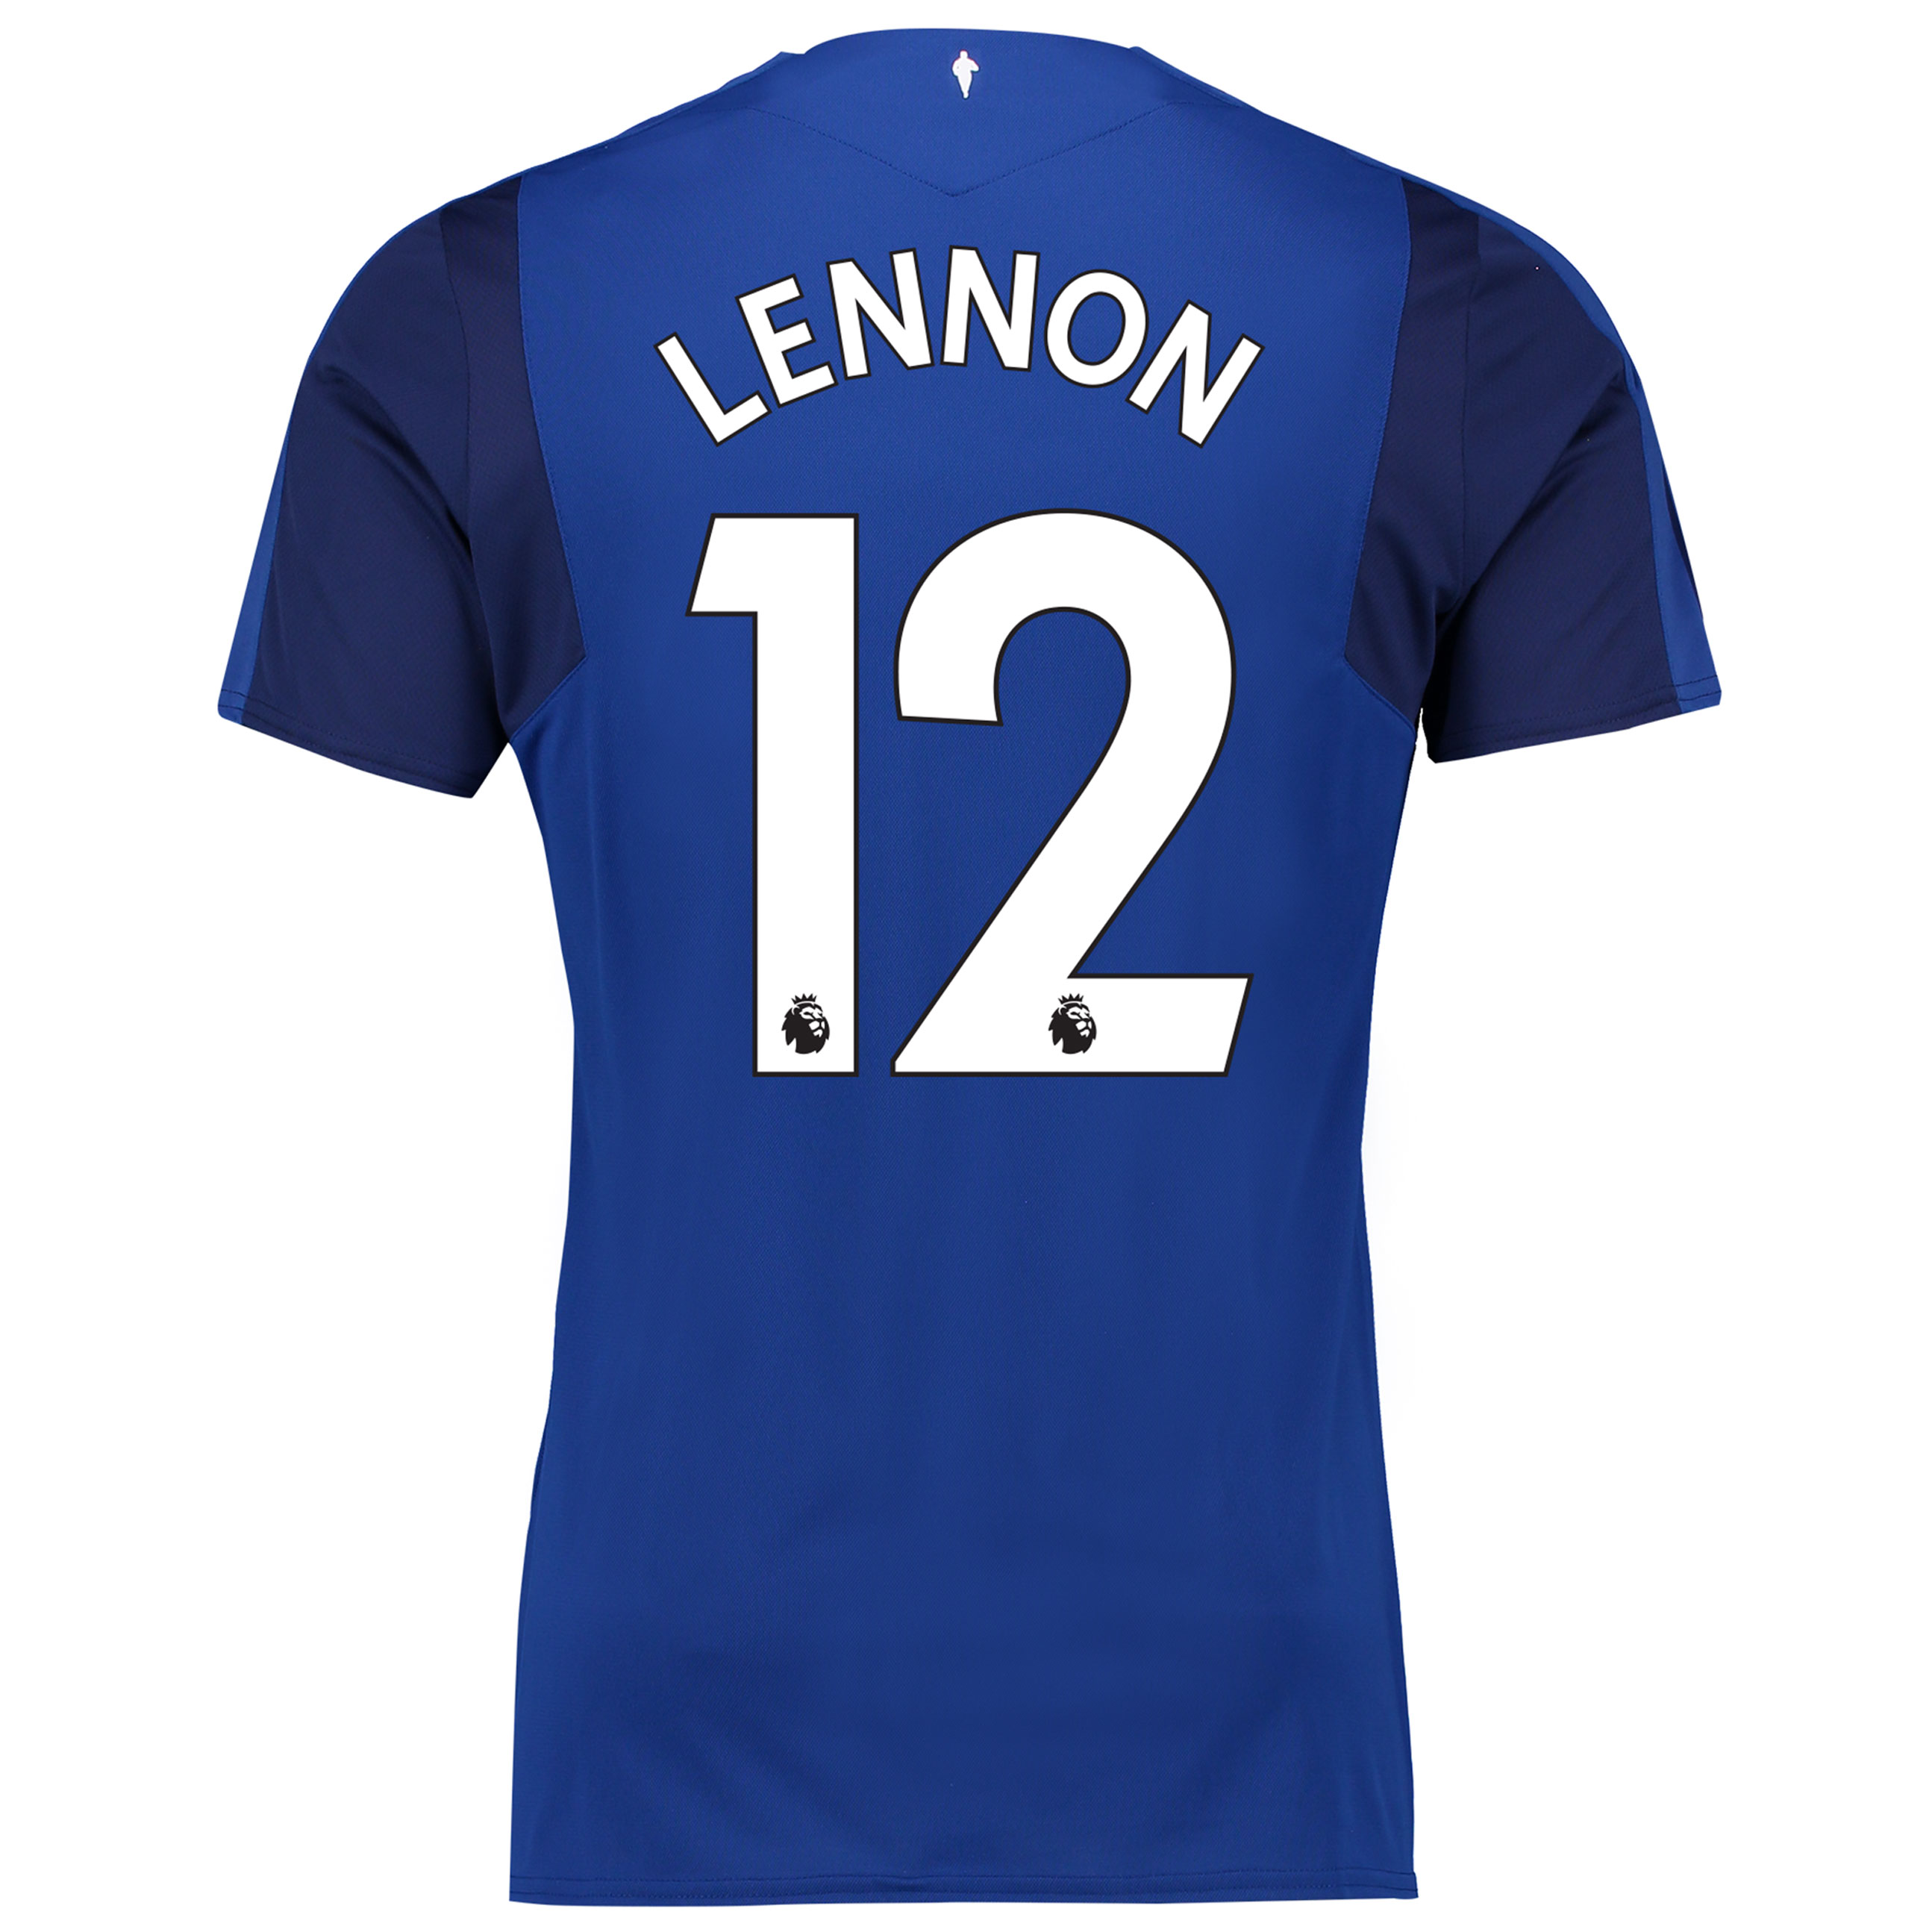 Everton Home Shirt 2017/18 with Lennon 12 printing